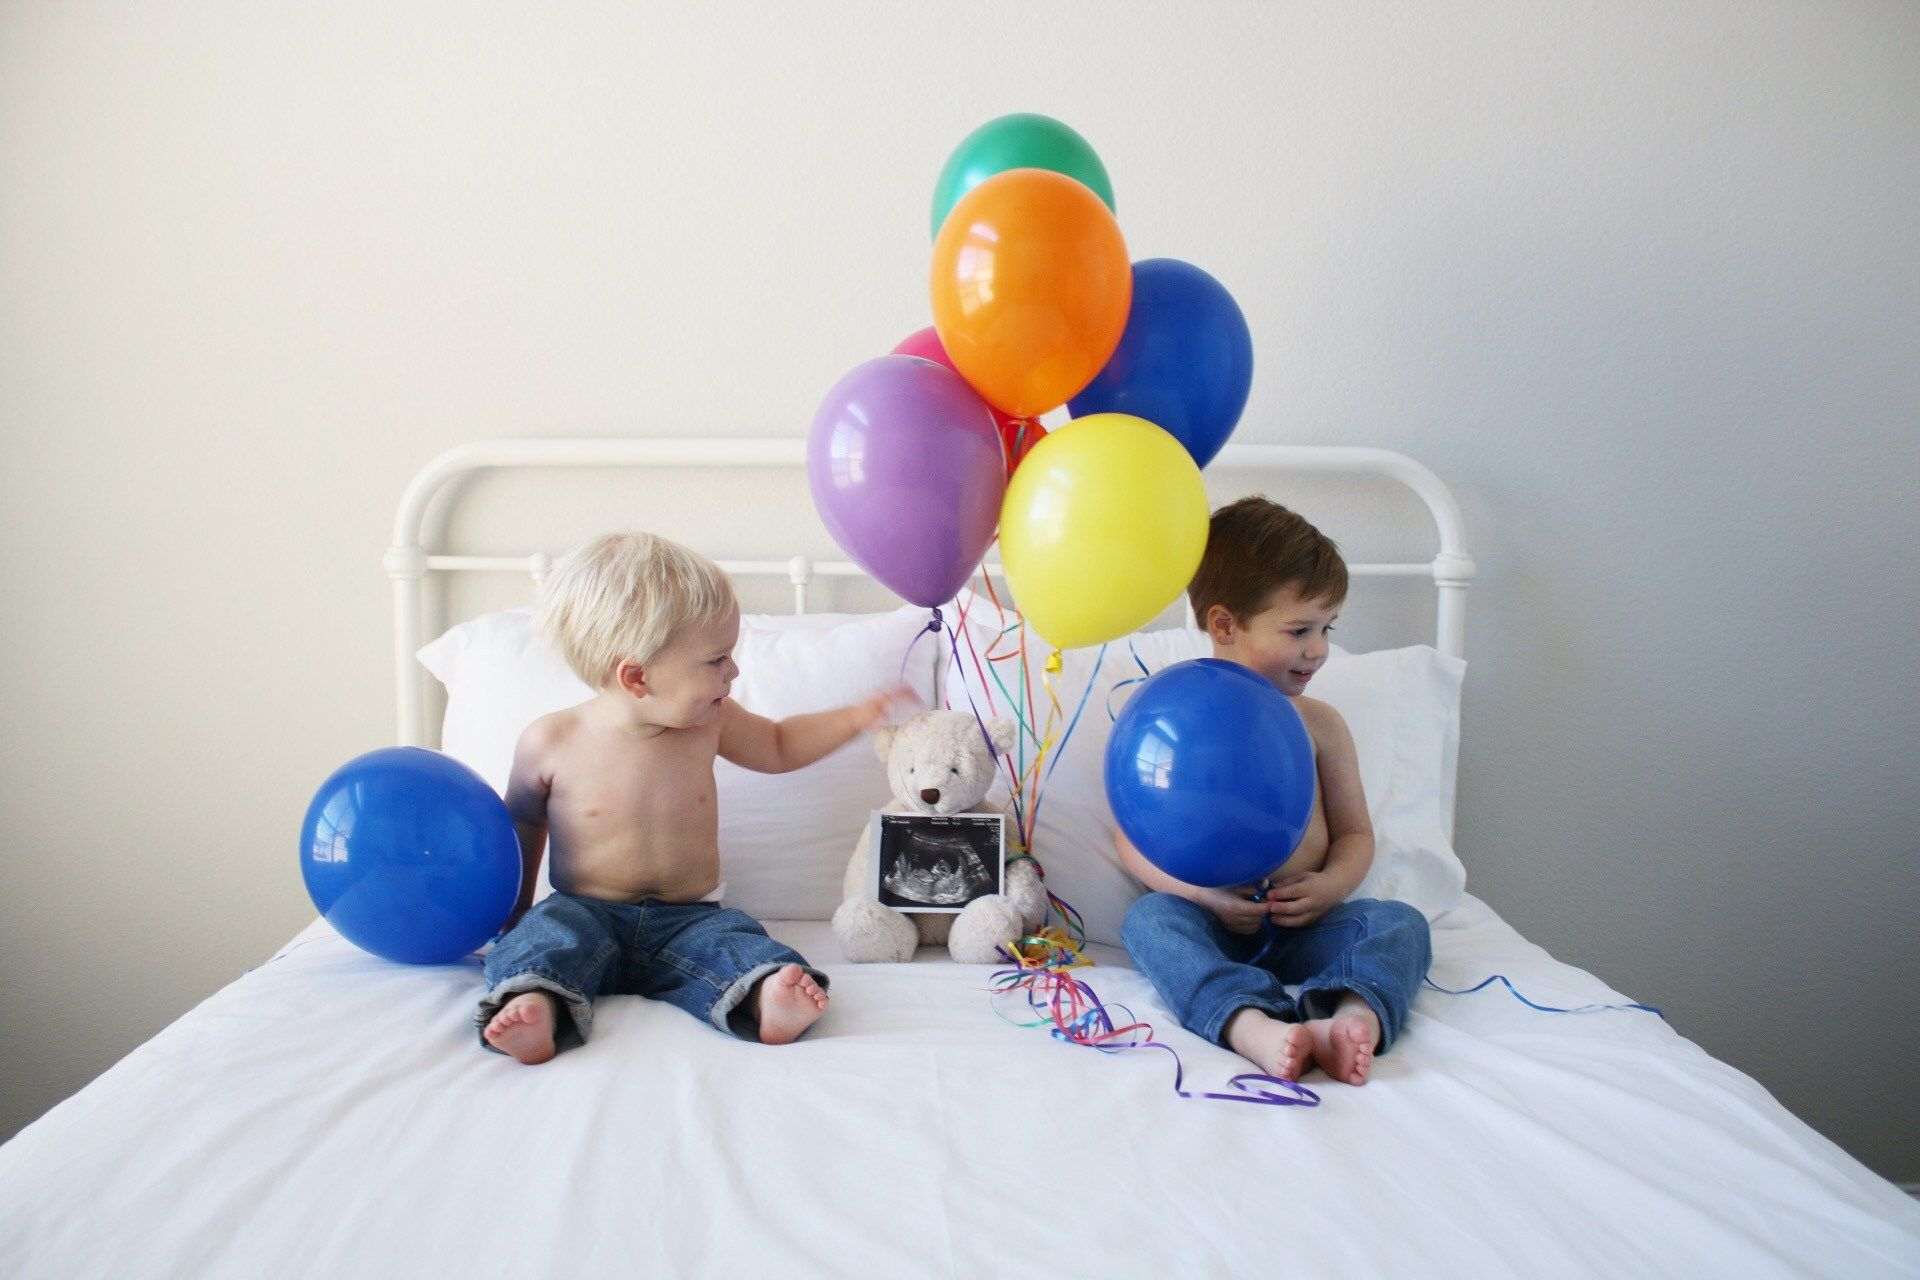 10 uplifting rainbow pregnancy announcements how to announce a